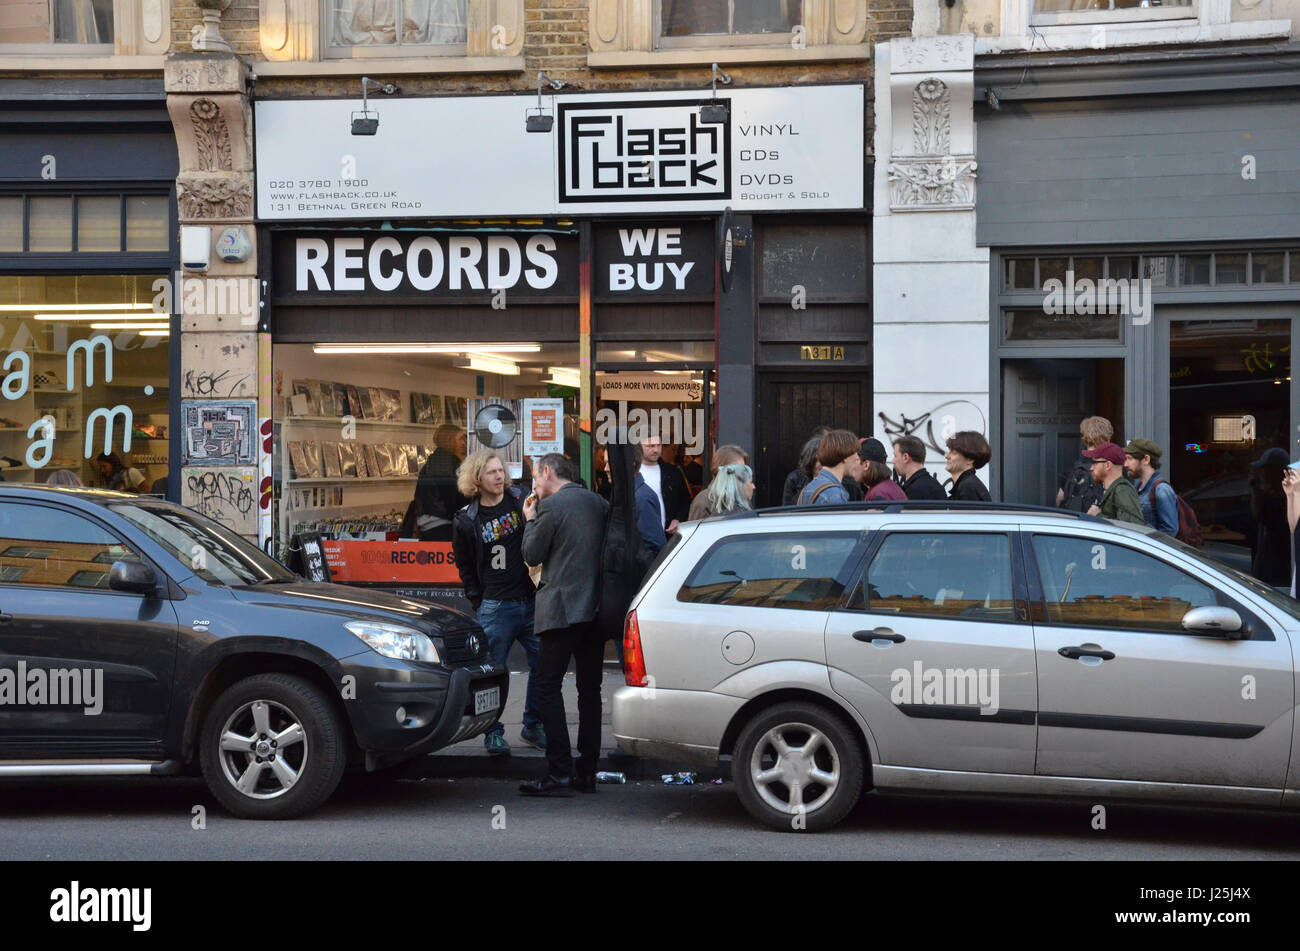 People outside Flashback Records on Record Store Day 2017